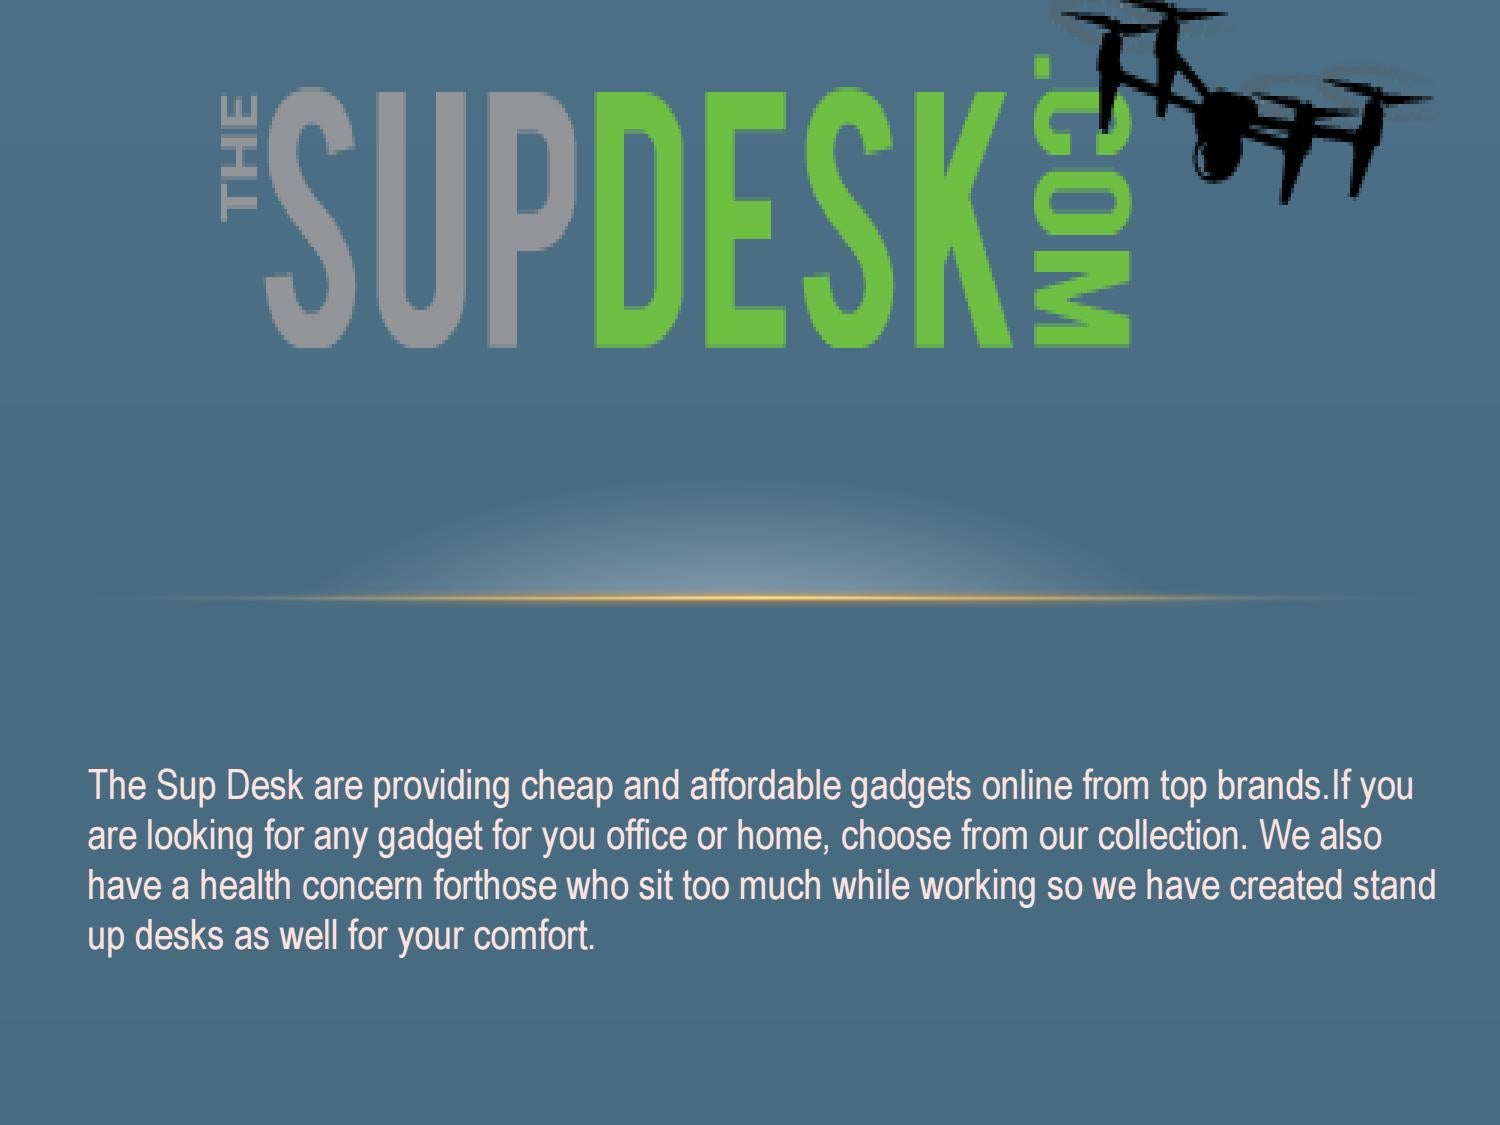 9a739f526cf Afterpay Security Cameras - The Supdesk by The Sup Desk - issuu